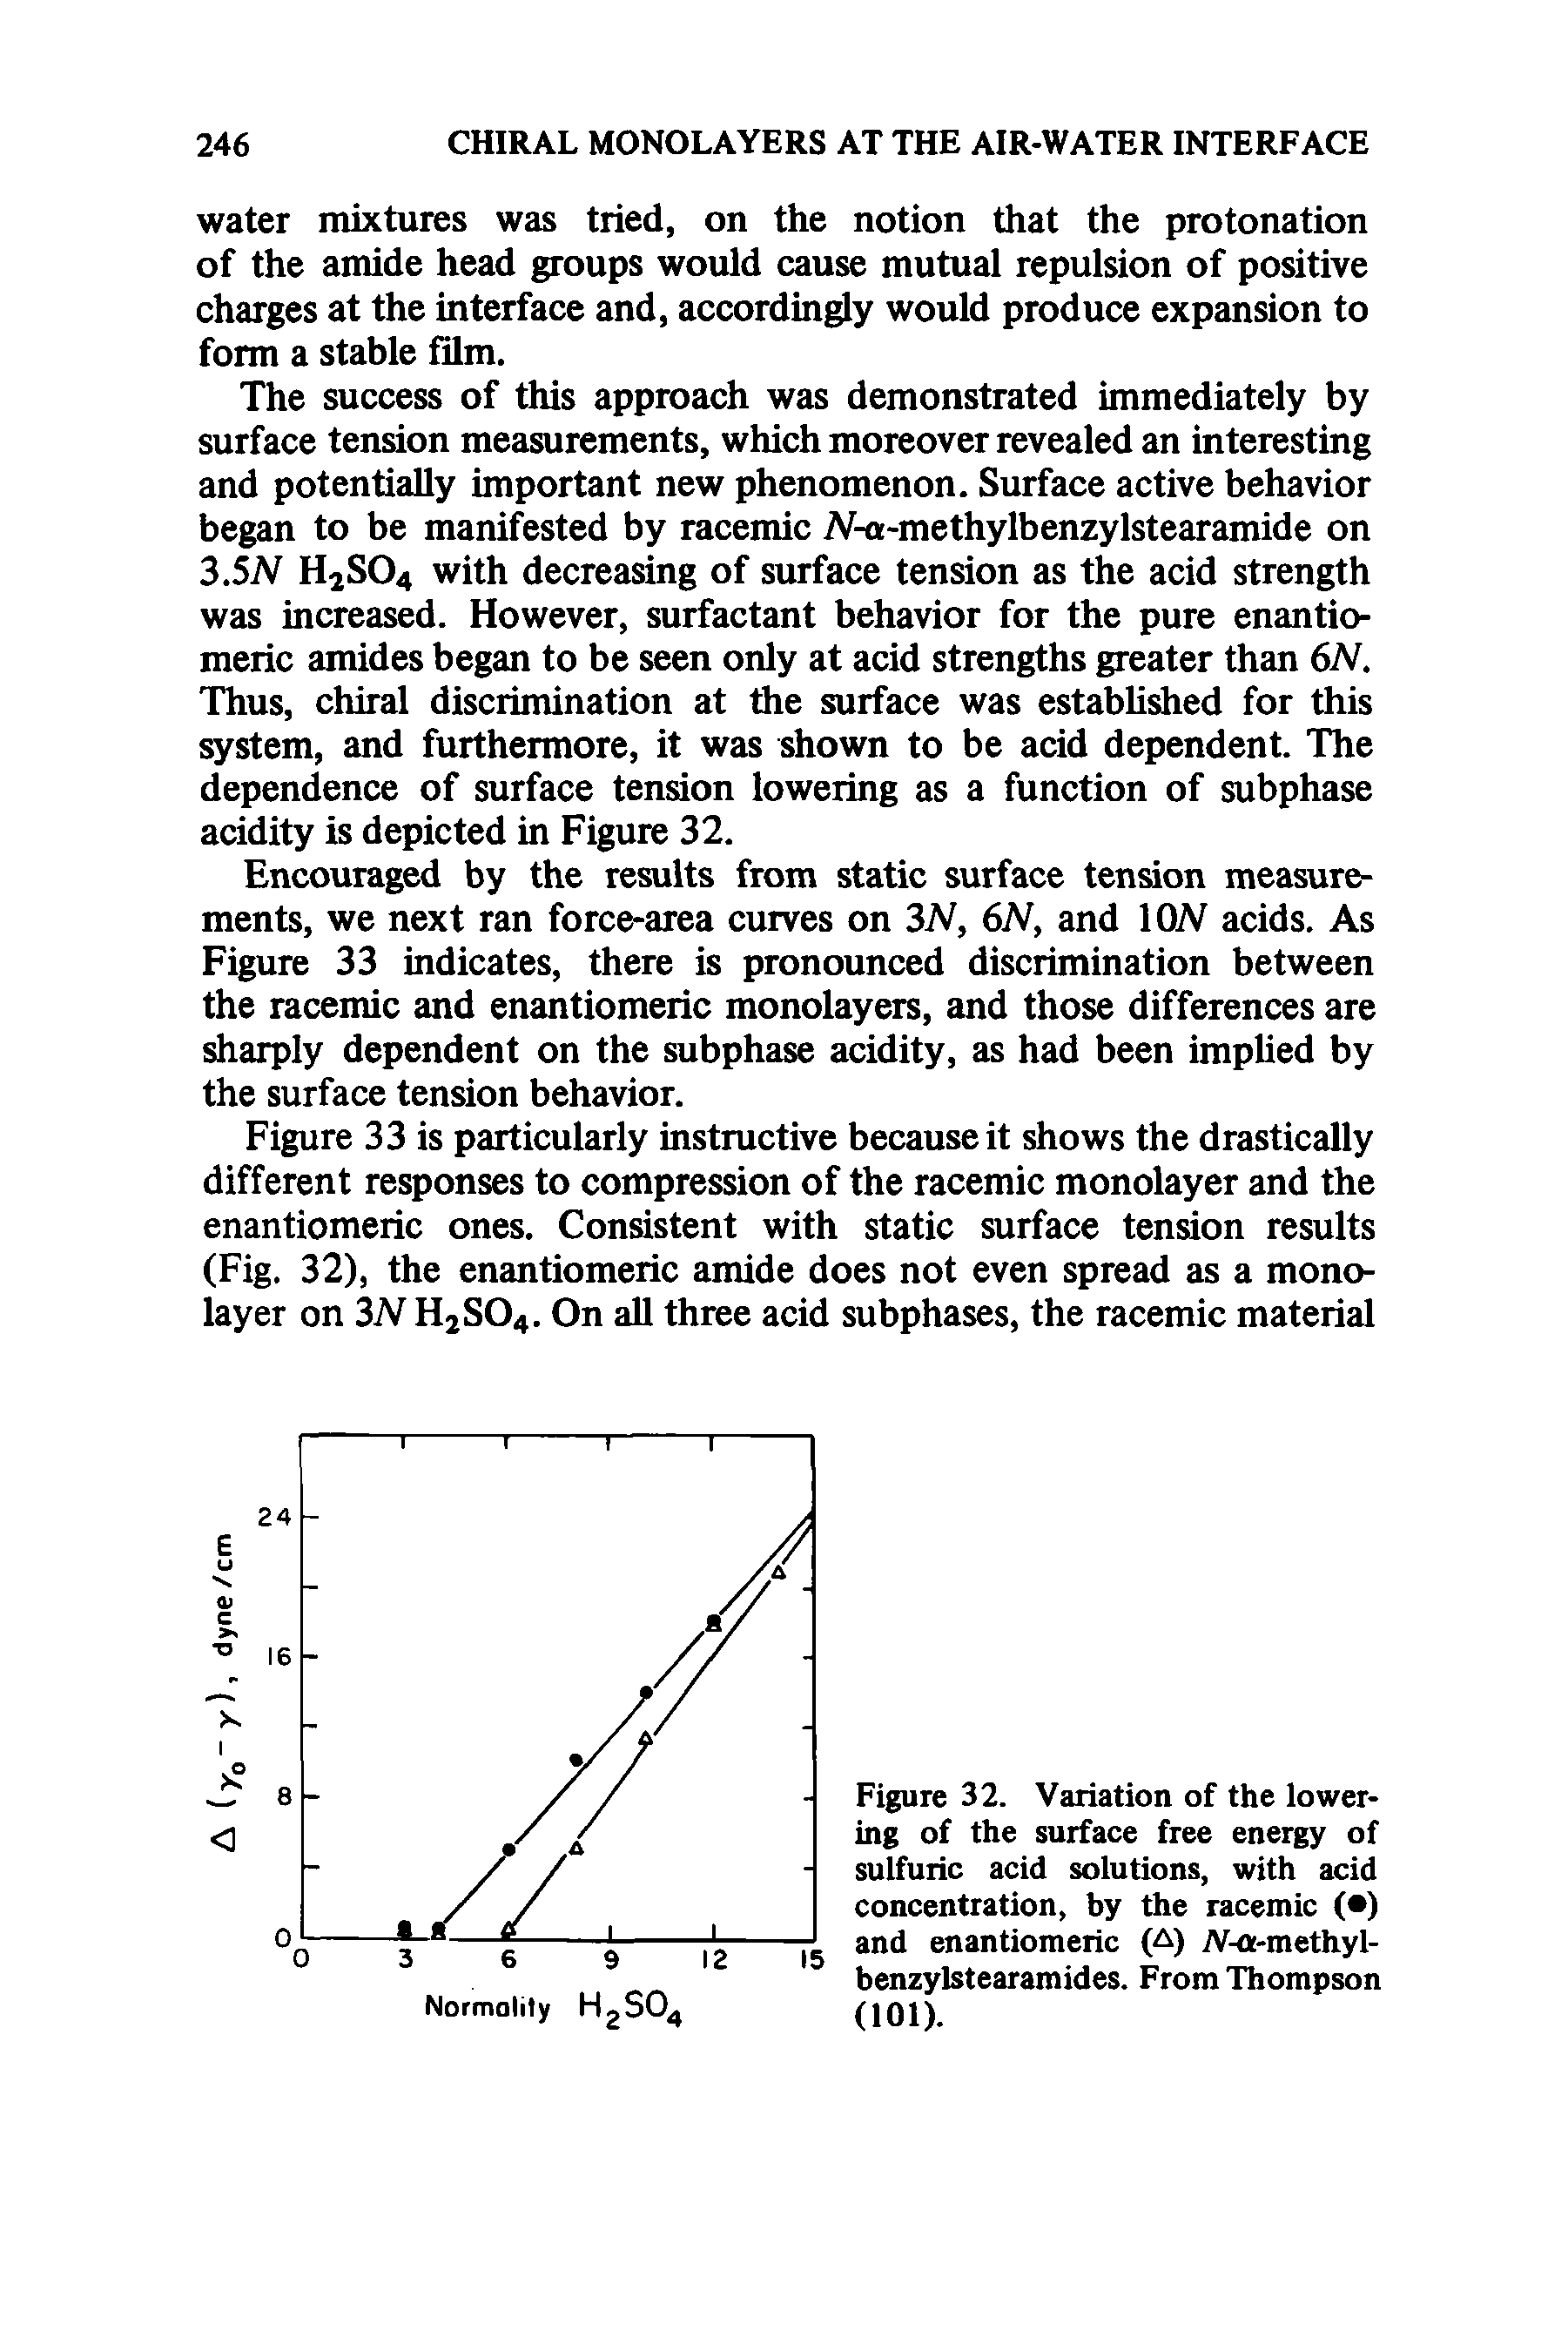 "Figure 32. Variation of the lowering of the <a href=""/info/free_energy_surface"">surface free energy</a> of sulfuric acid solutions, <a href=""/info/with_acid"">with acid</a> concentration, by the racemic ( ) and enantiomeric (A) -a-methyl-benzylstearamides. From Thompson (101)."